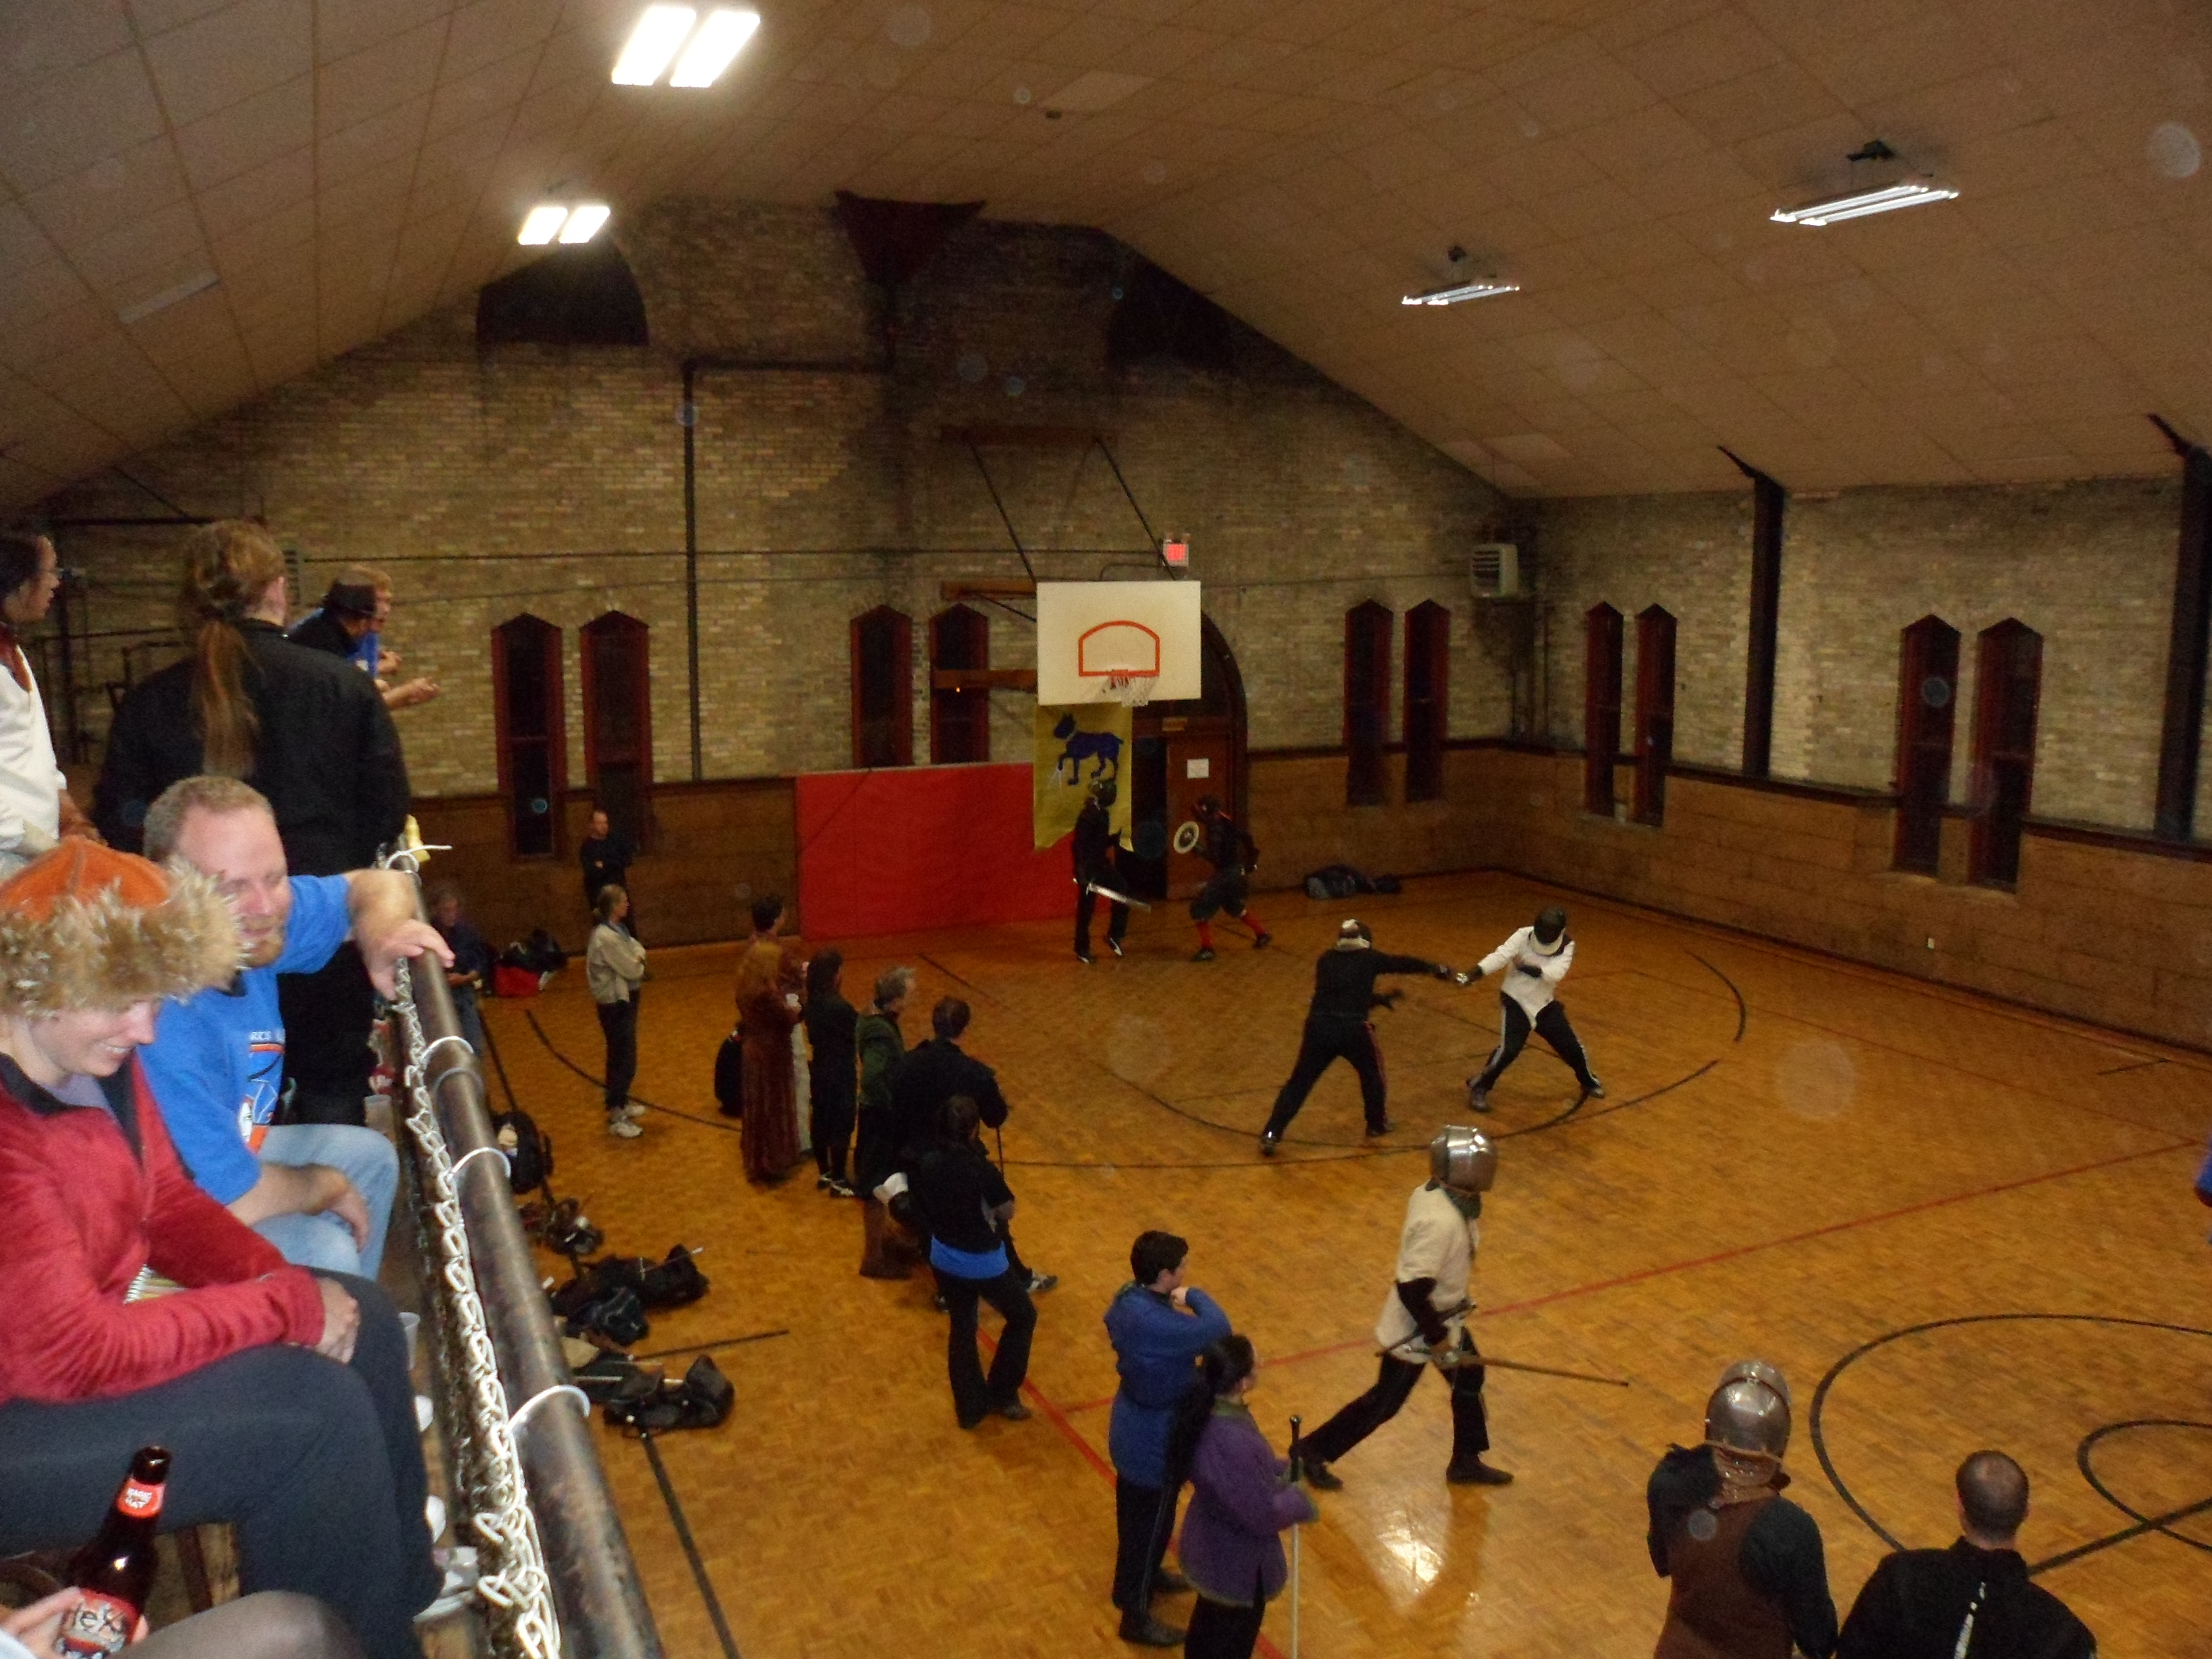 An old parket-floored, stone-walled gymnasium with fencers in diverse styles of clothing from fourteenth-century aketons to 20th-century white fencing jackets